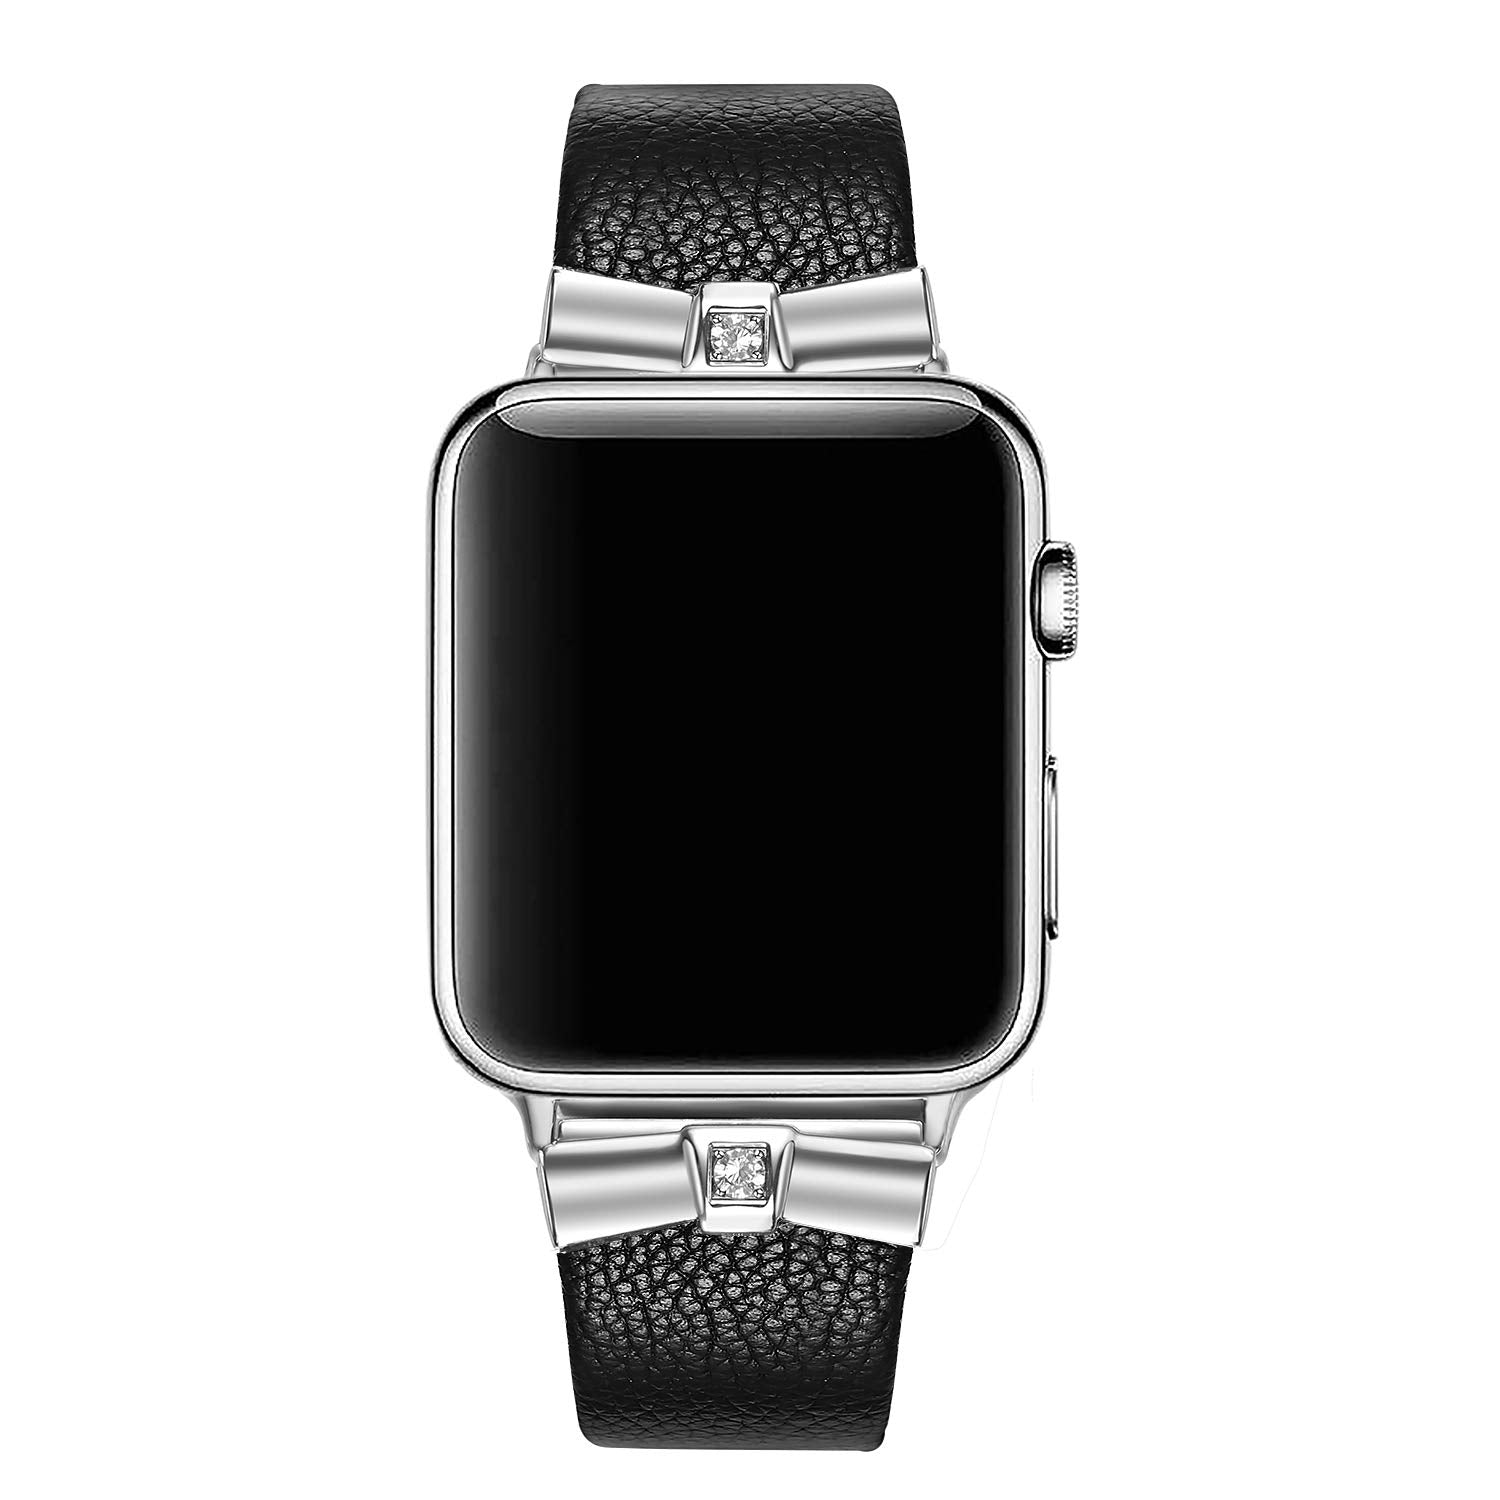 be3d0f8a152 Other Electronics - Secbolt Leather Bands Compatible Apple Watch ...